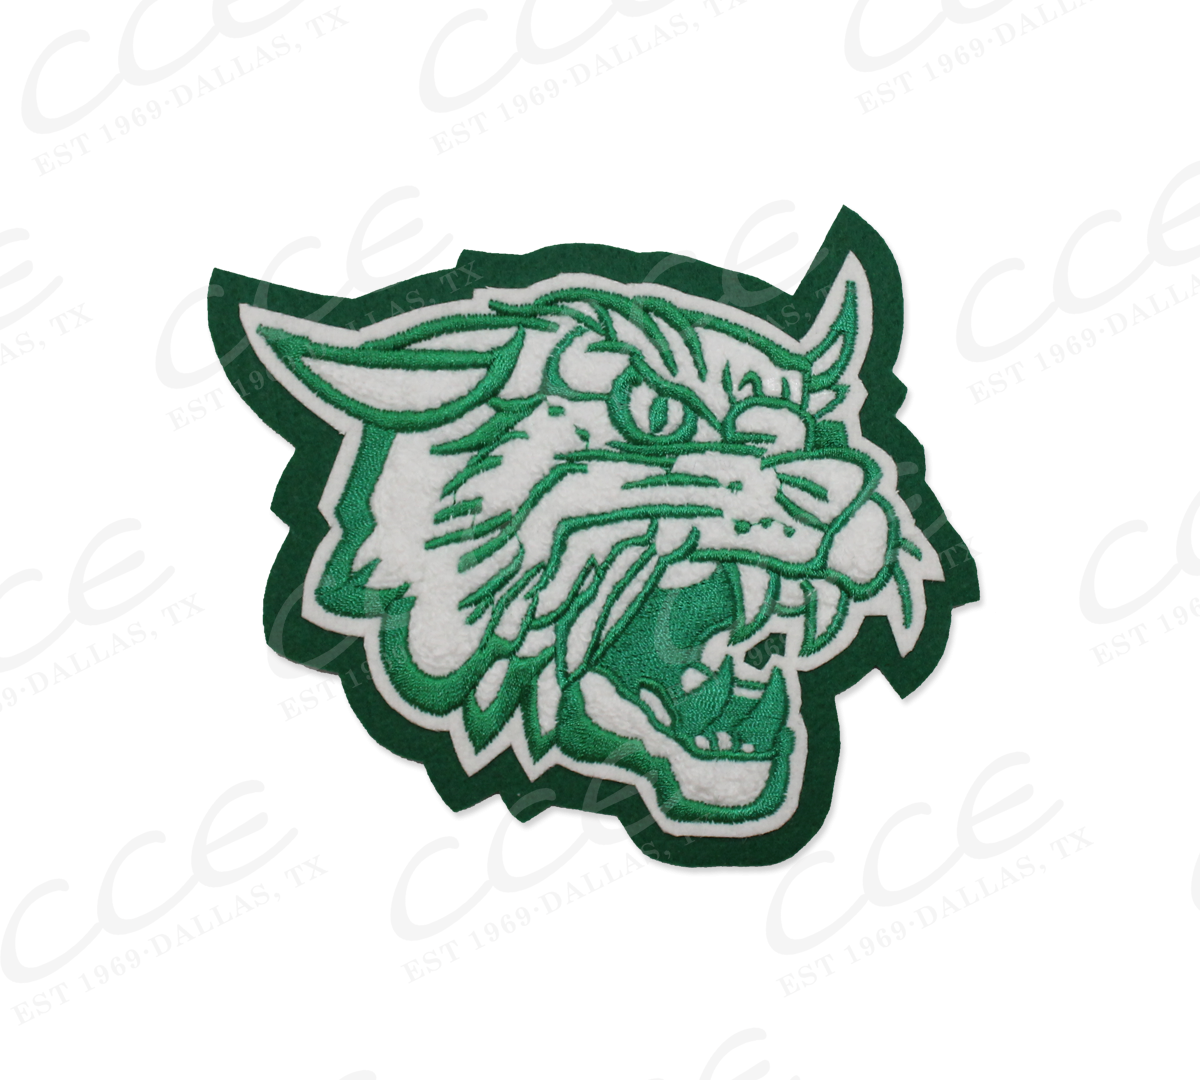 Wildcat school mascot clipart freeuse Kennedale HS Wildcats Sleeve Mascot freeuse